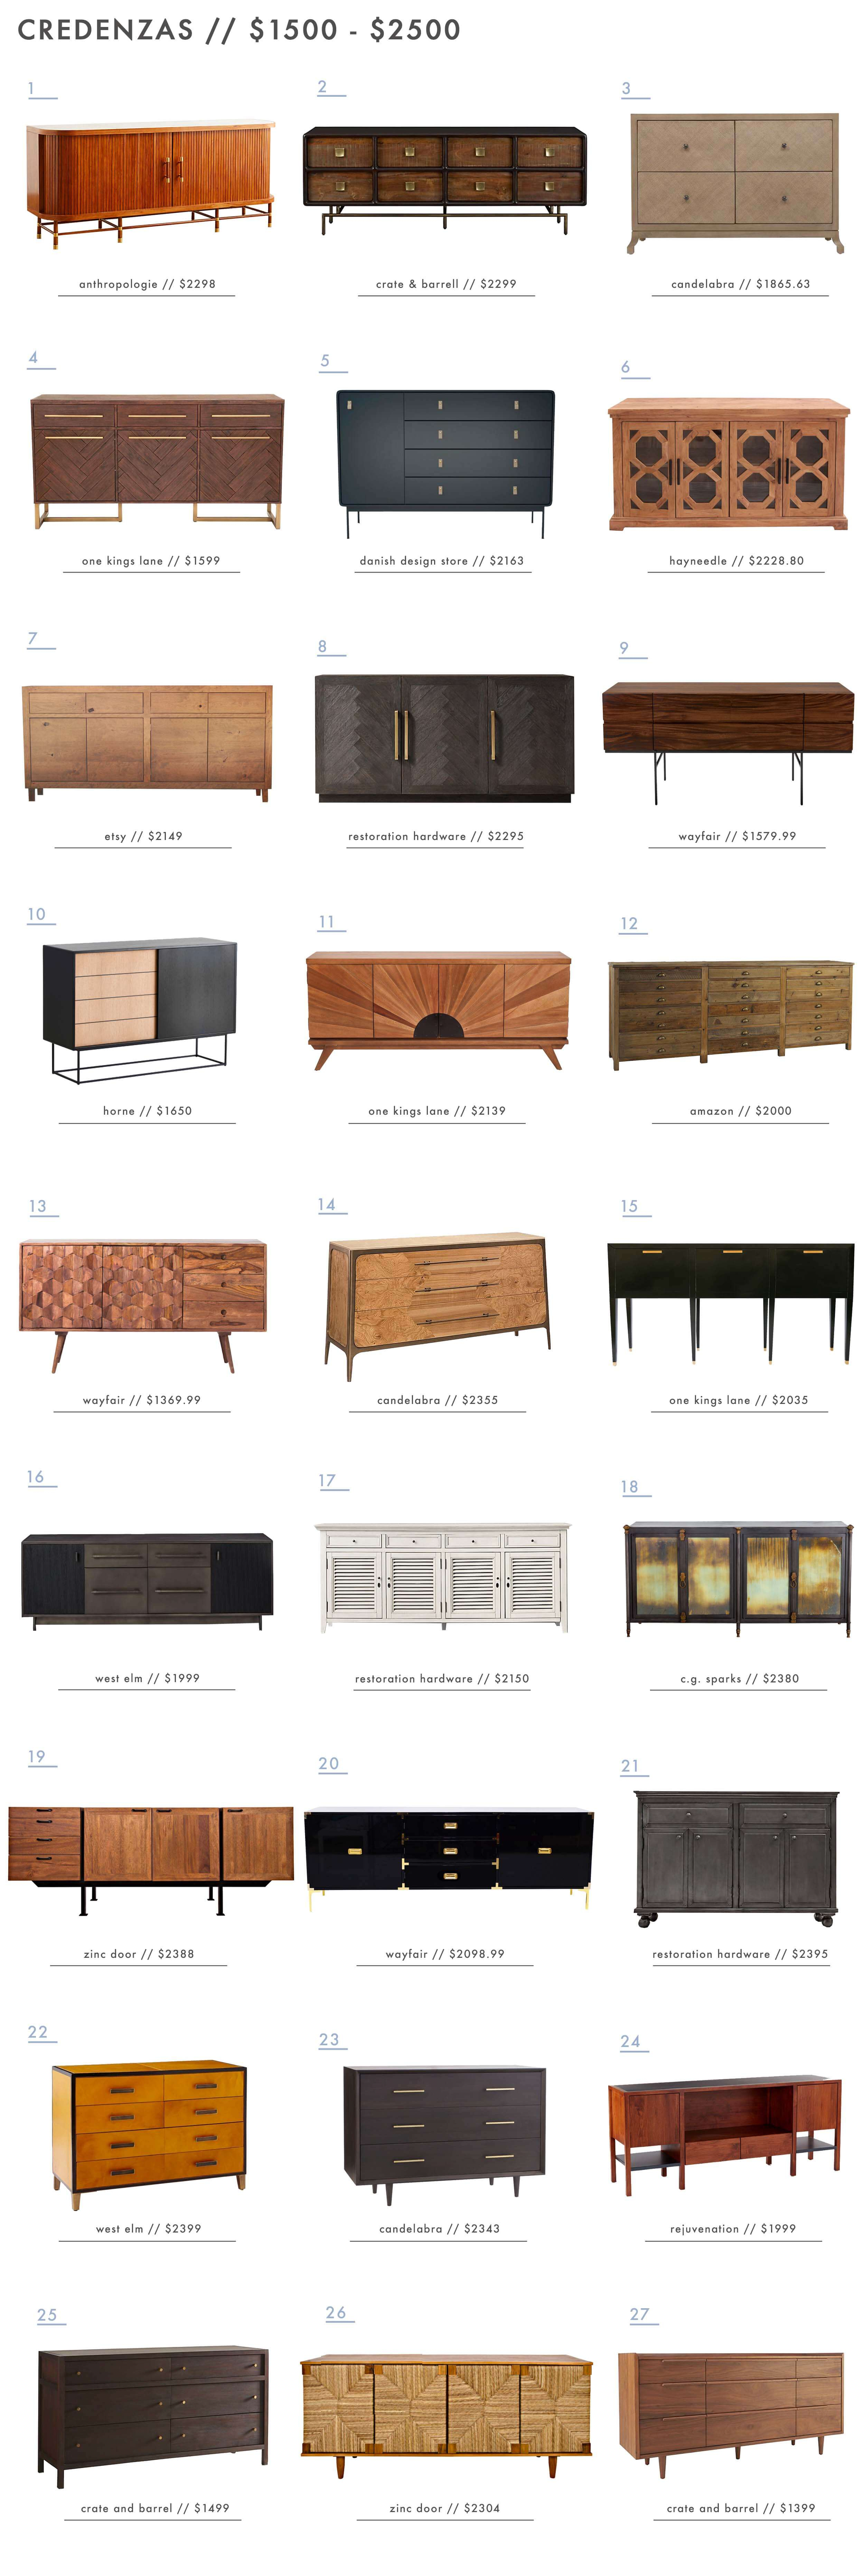 108 Of Our Favorite Credenzas (At Every Price Point) - Emily pertaining to Avenal Sideboards (Image 2 of 30)